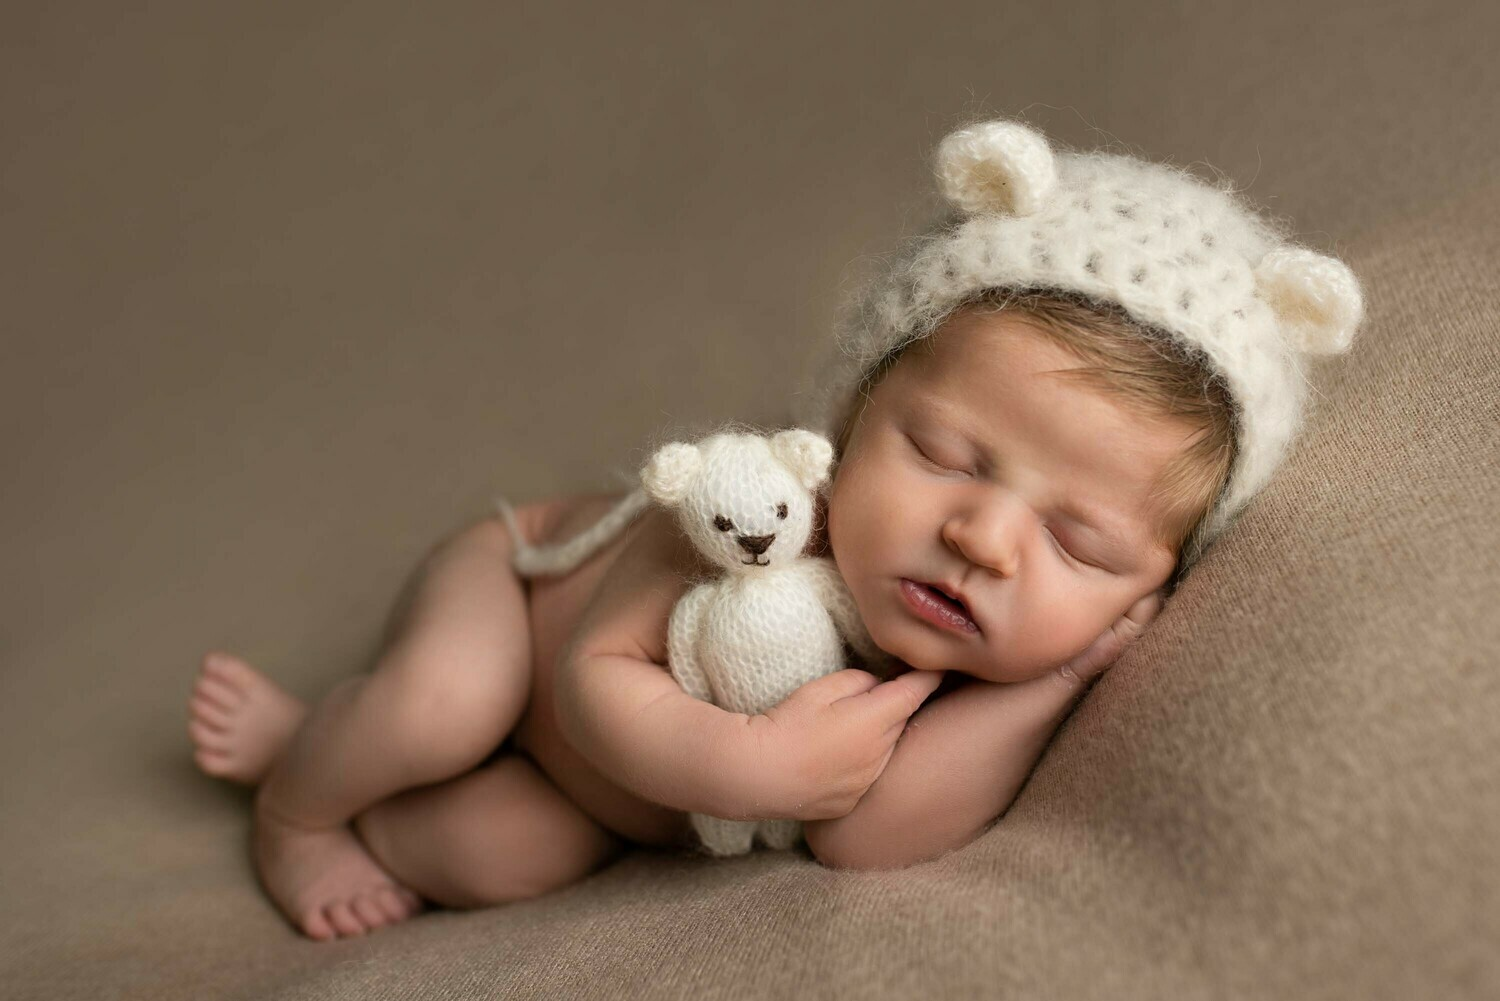 Newborn Photoshoot - Studio